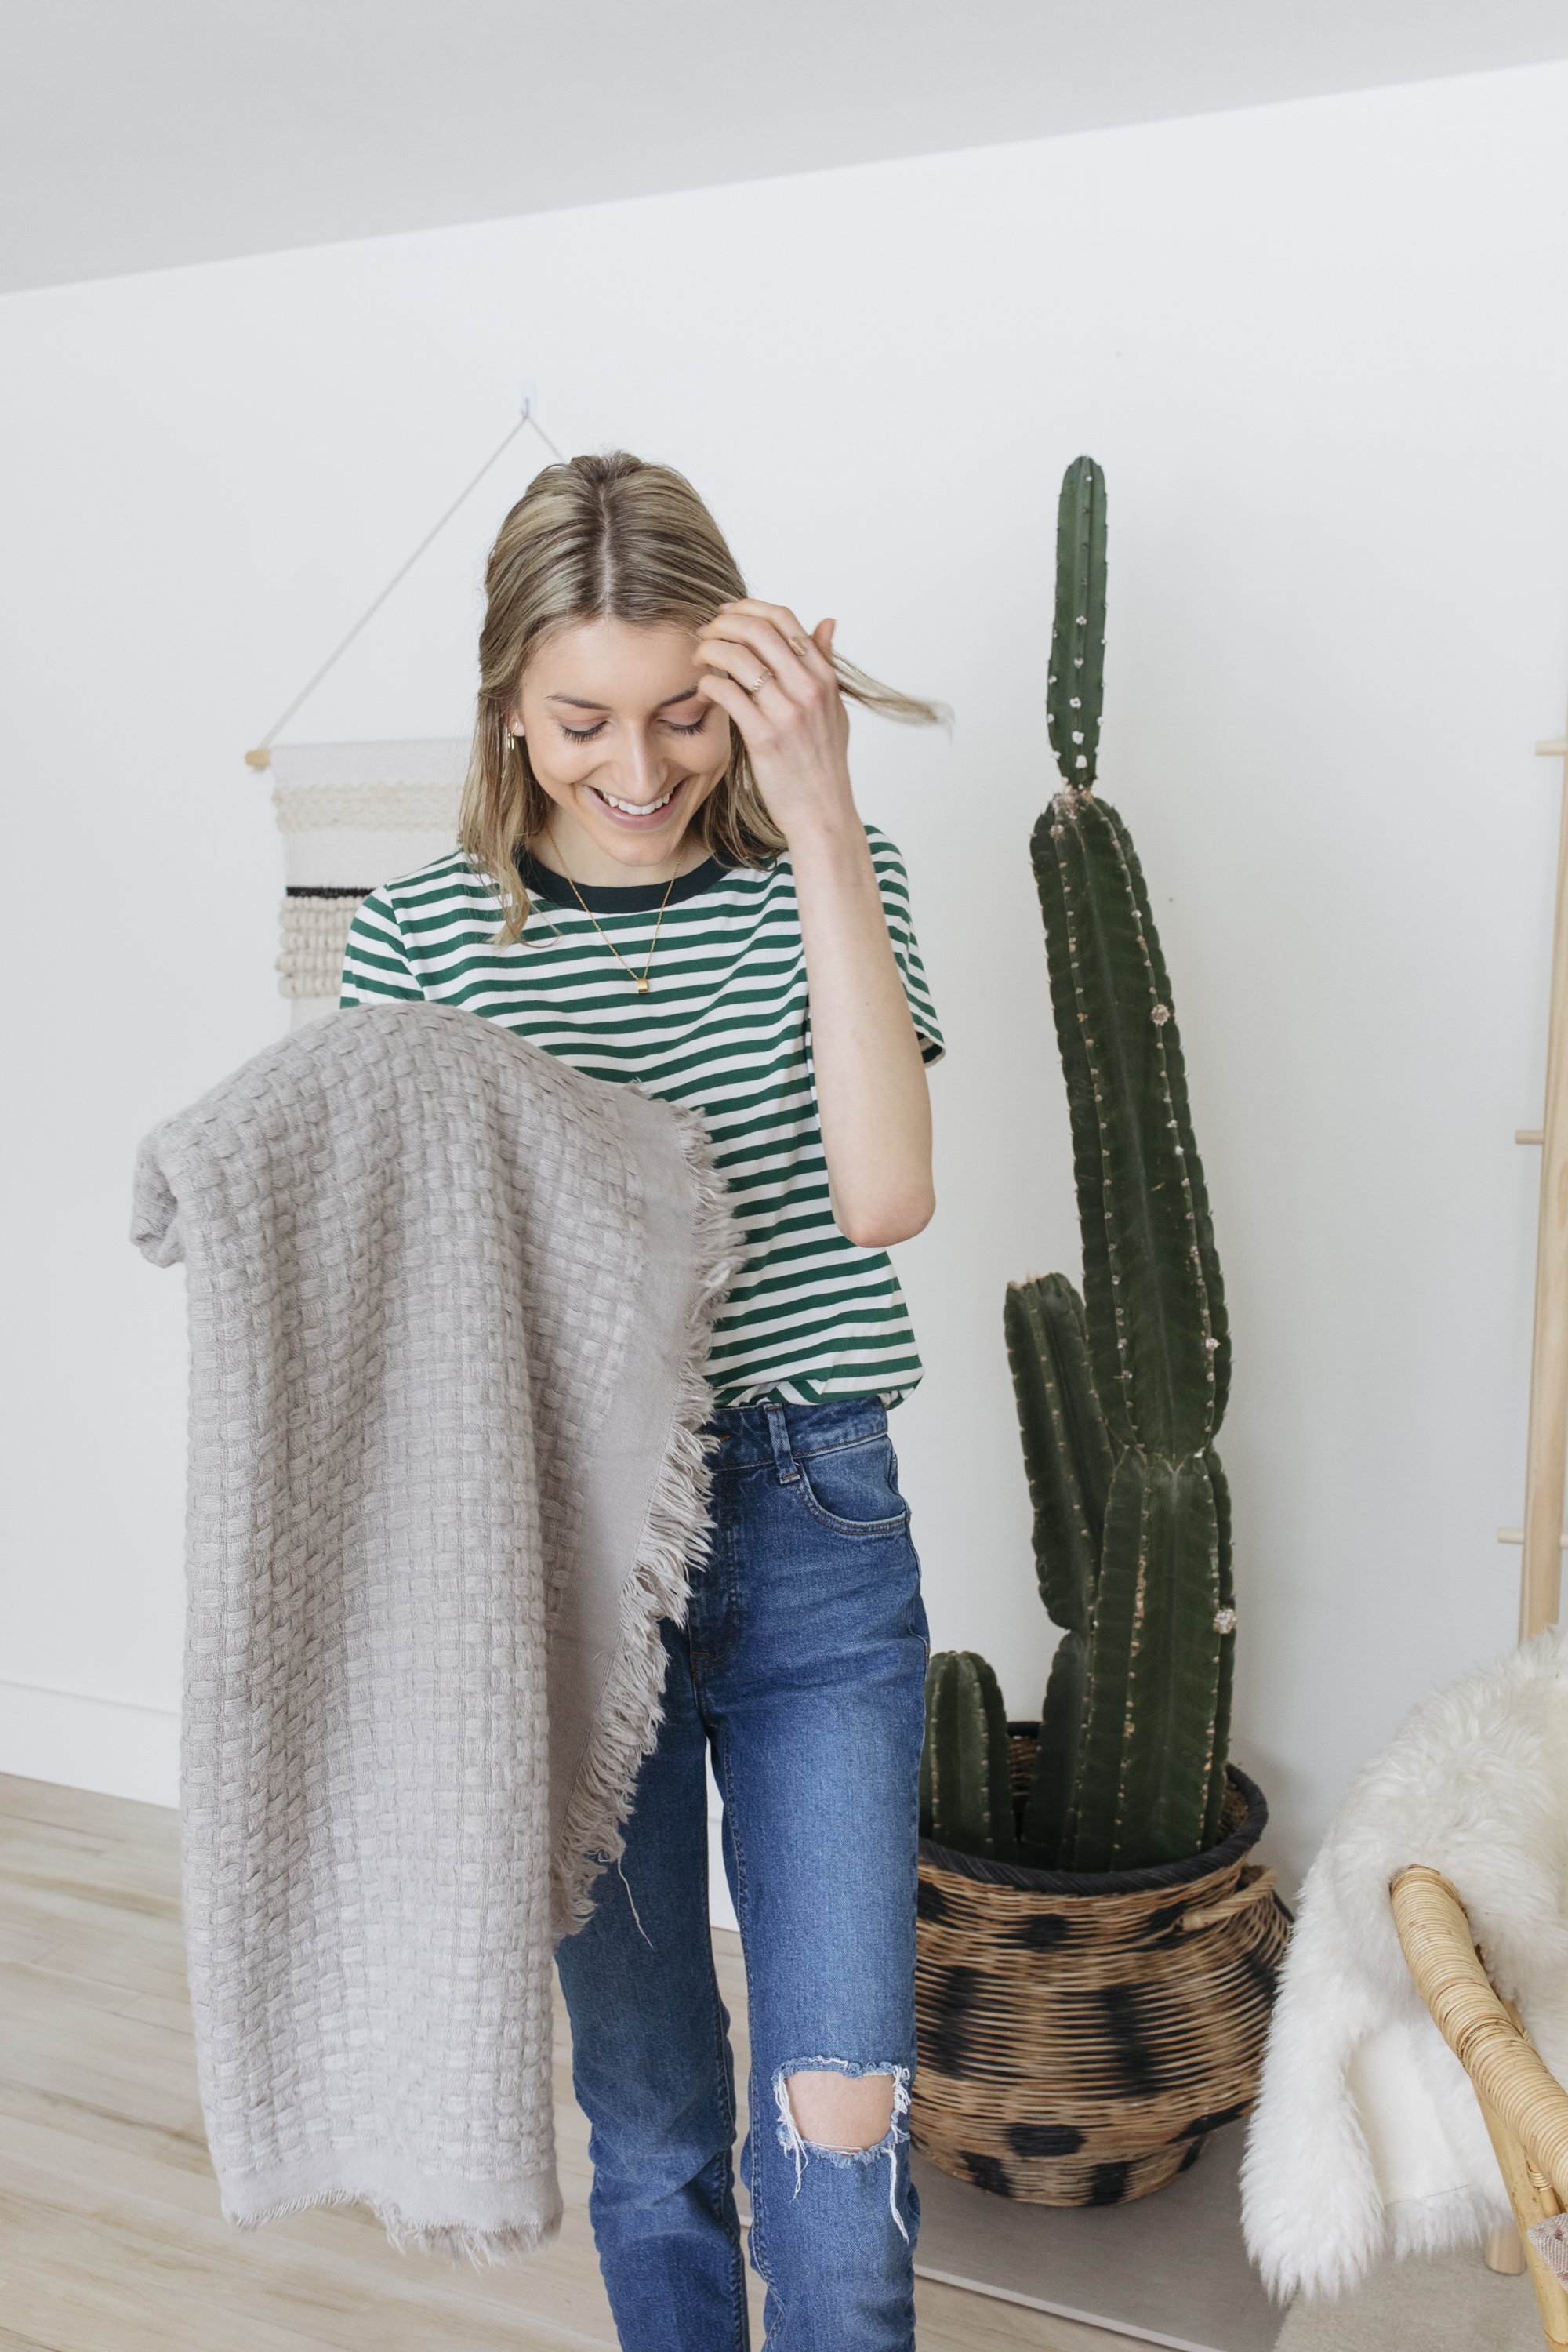 Blankets are a fun was to bring an aesthetic to a room (or diy ladder) and they are cozy!